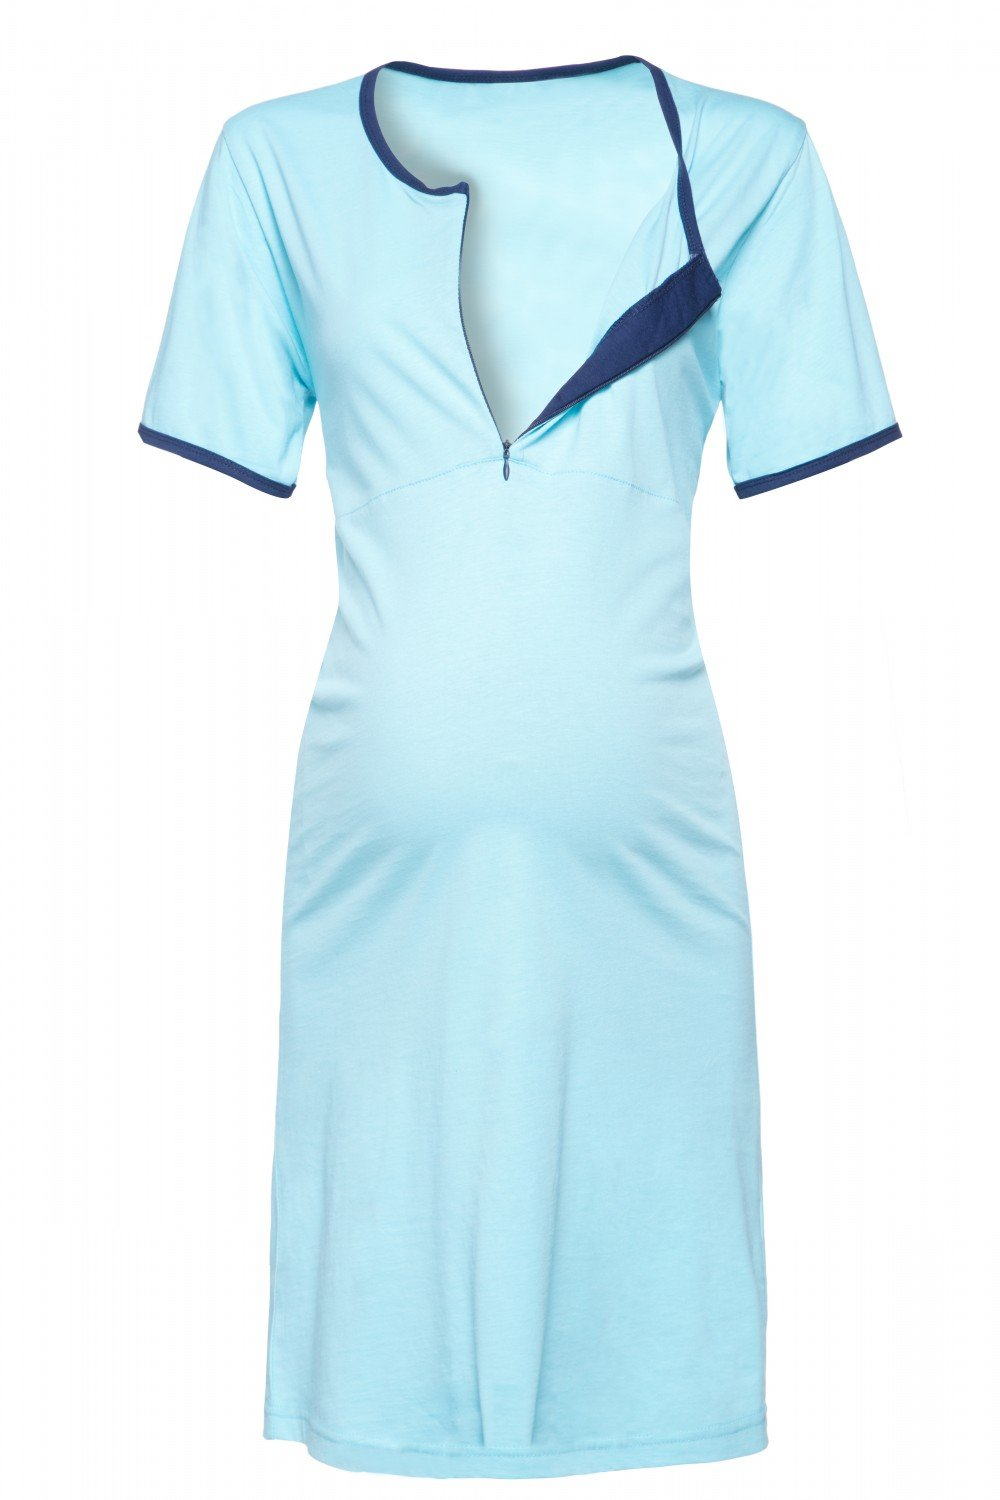 HAPPY MAMA. Women's Maternity Nursing Breastfeeding Nightdress Shirt Gown. 350p nursing_night_350